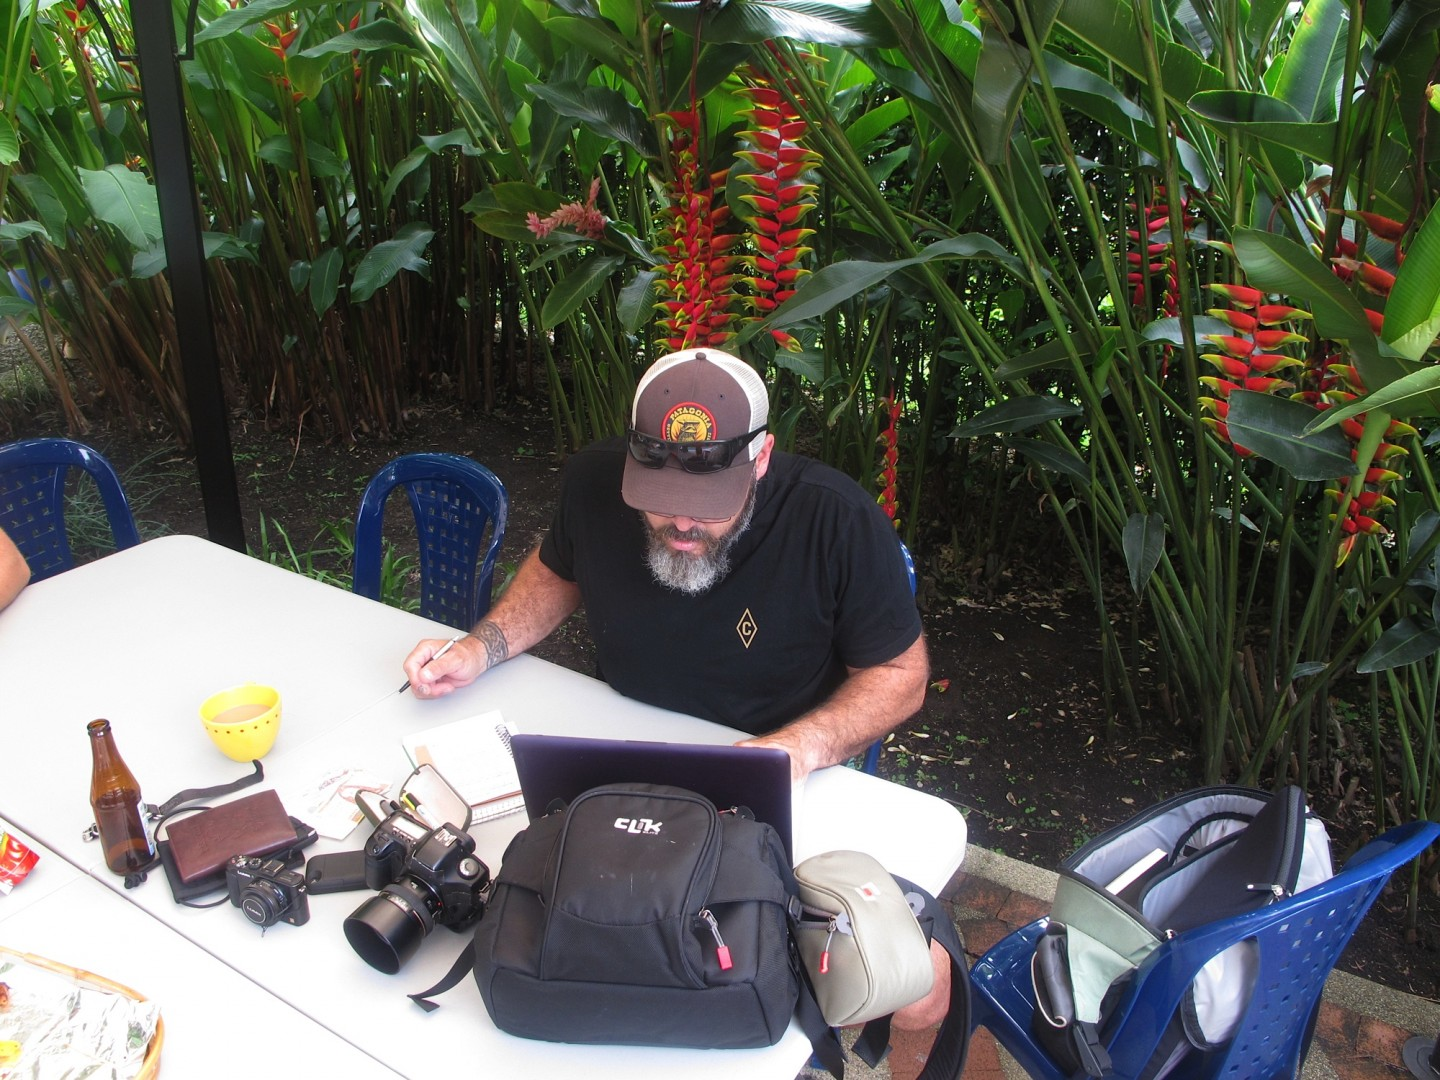 Working photojournalist in the field. Dallas Hyland takes a break from the operation on the patio of an undisclosed villa in Armenia, Colombia to begin documenting, Oct. 2014 | Photo courtesy of Dallas Hyland, St. George News